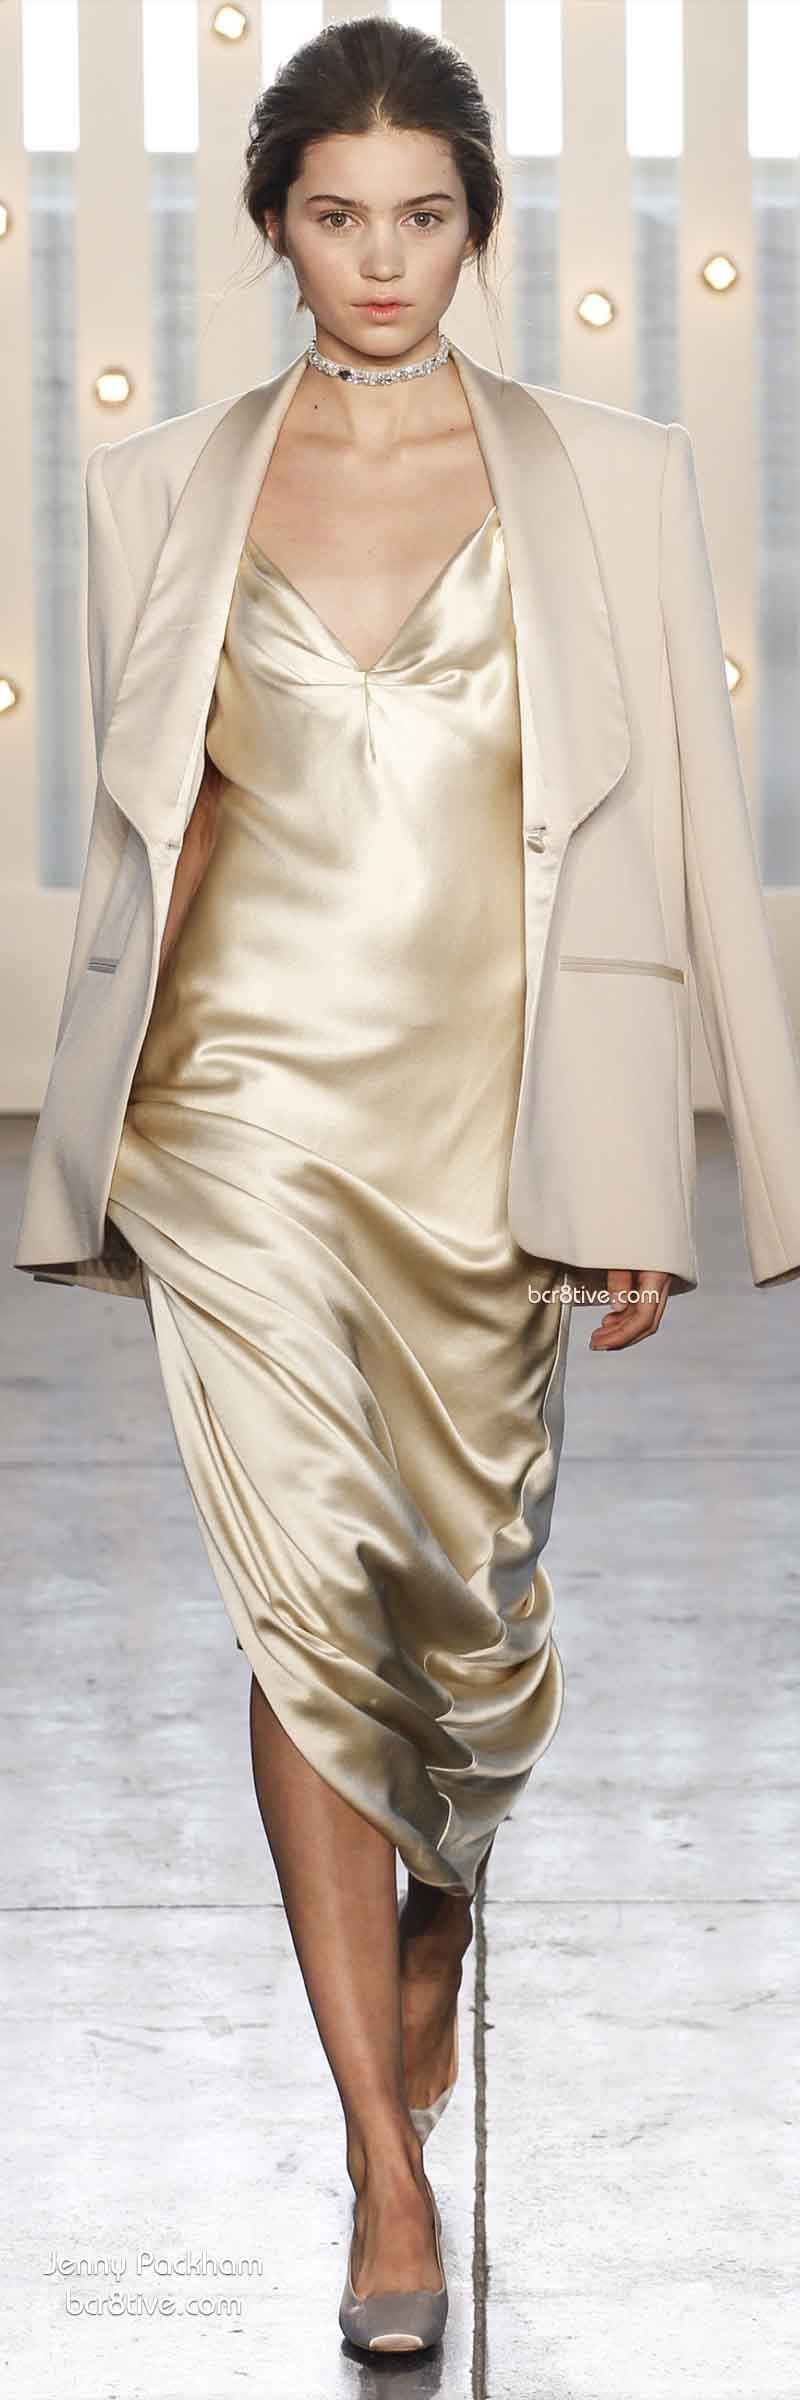 Fall 2014 Menswear Inspired Fashion - Jenny Packham